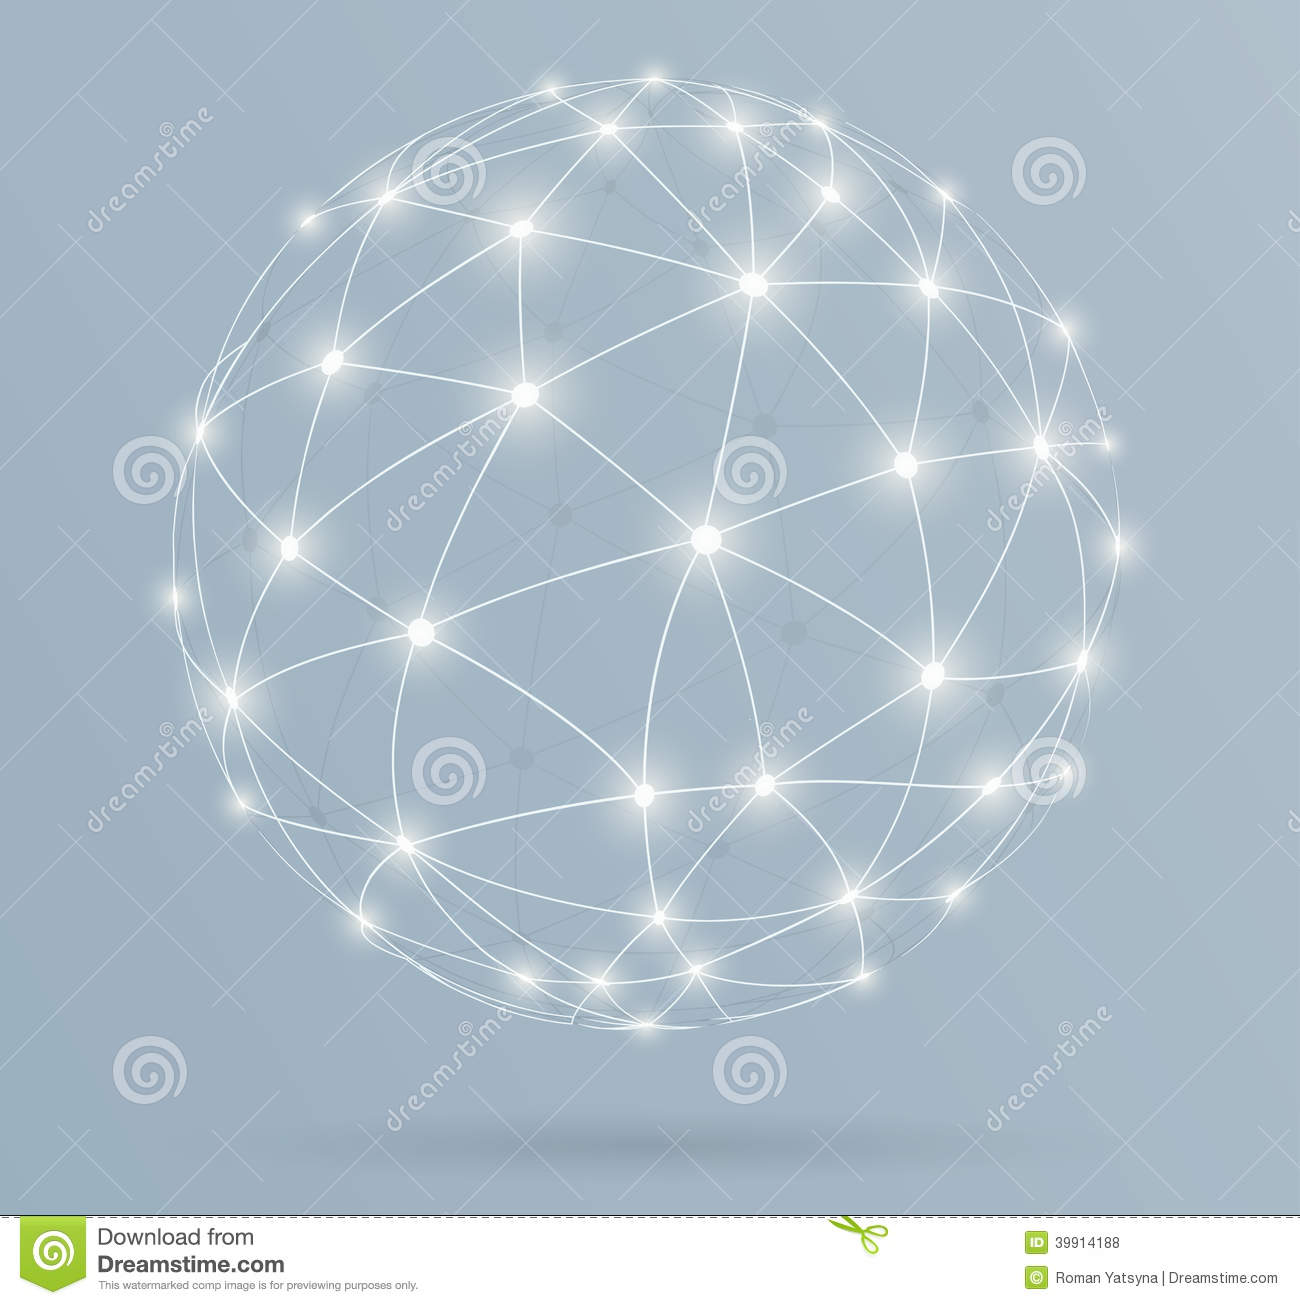 Download Network, Global Digital Connections With Glowing Lines Stock Vector - Illustration of internet, blue: 39914188